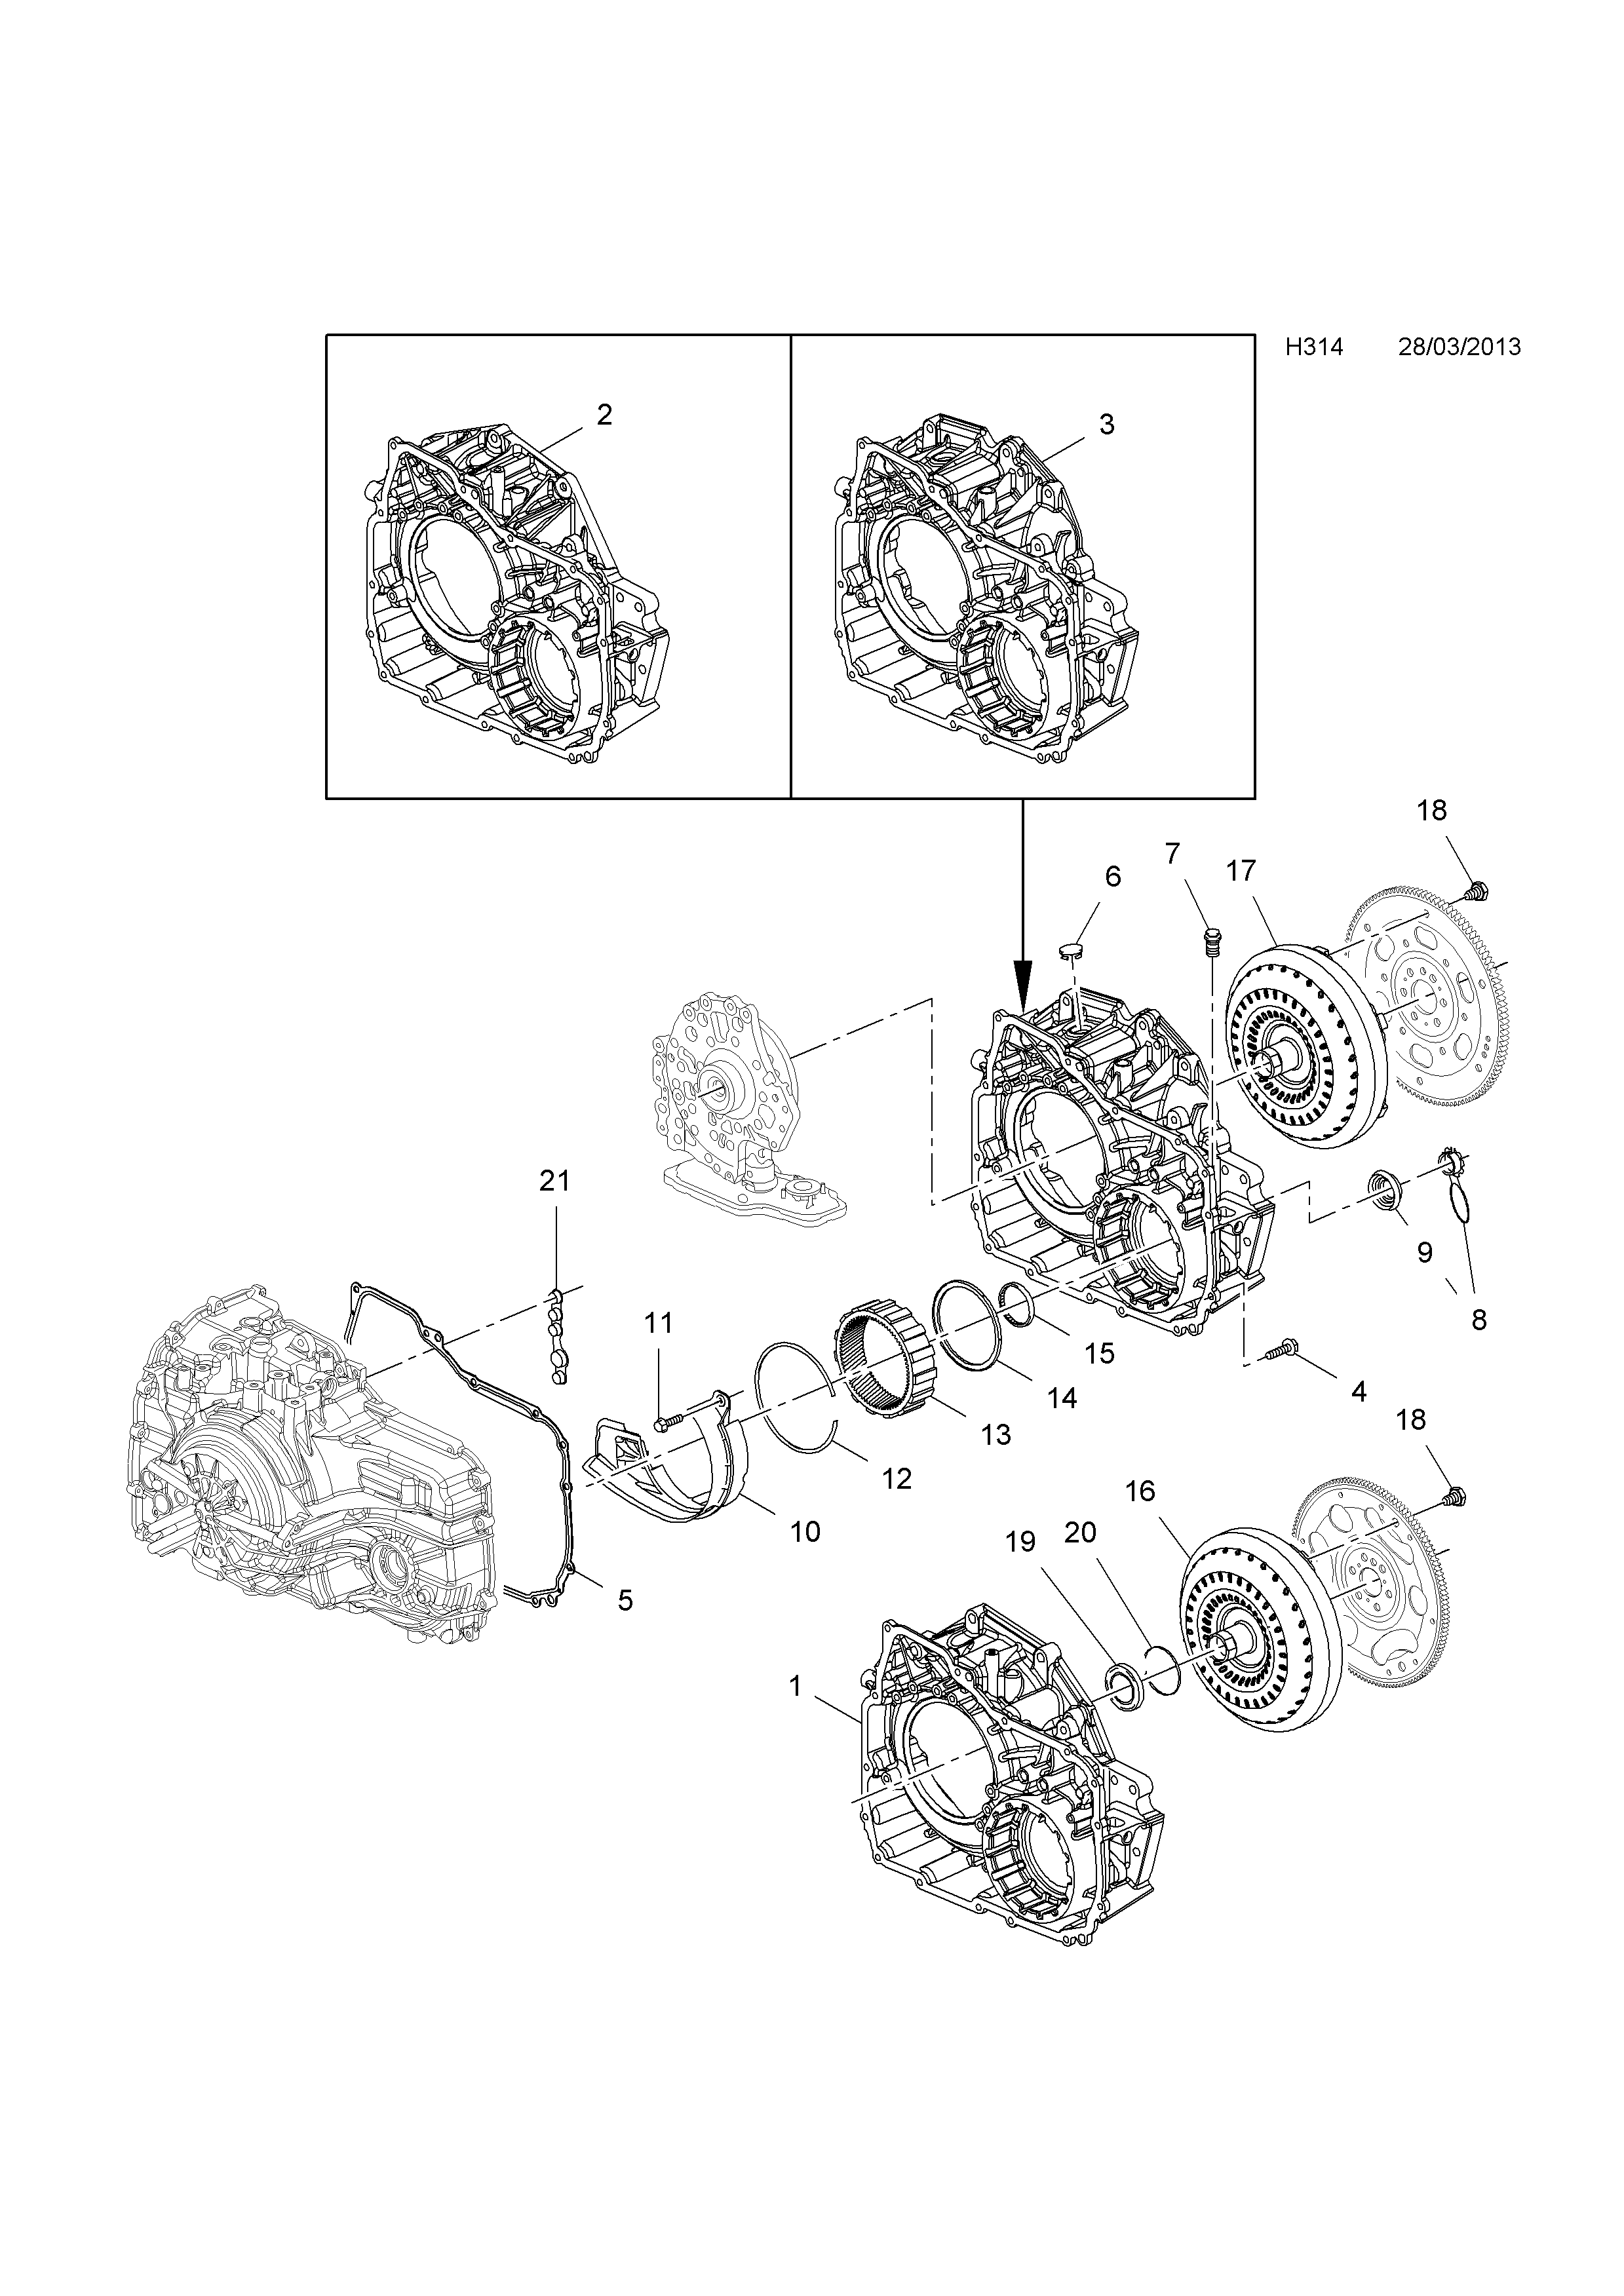 Opel Antara 2007 H Transmission 4 6 Speed Automatic Diagrams List Of Parts